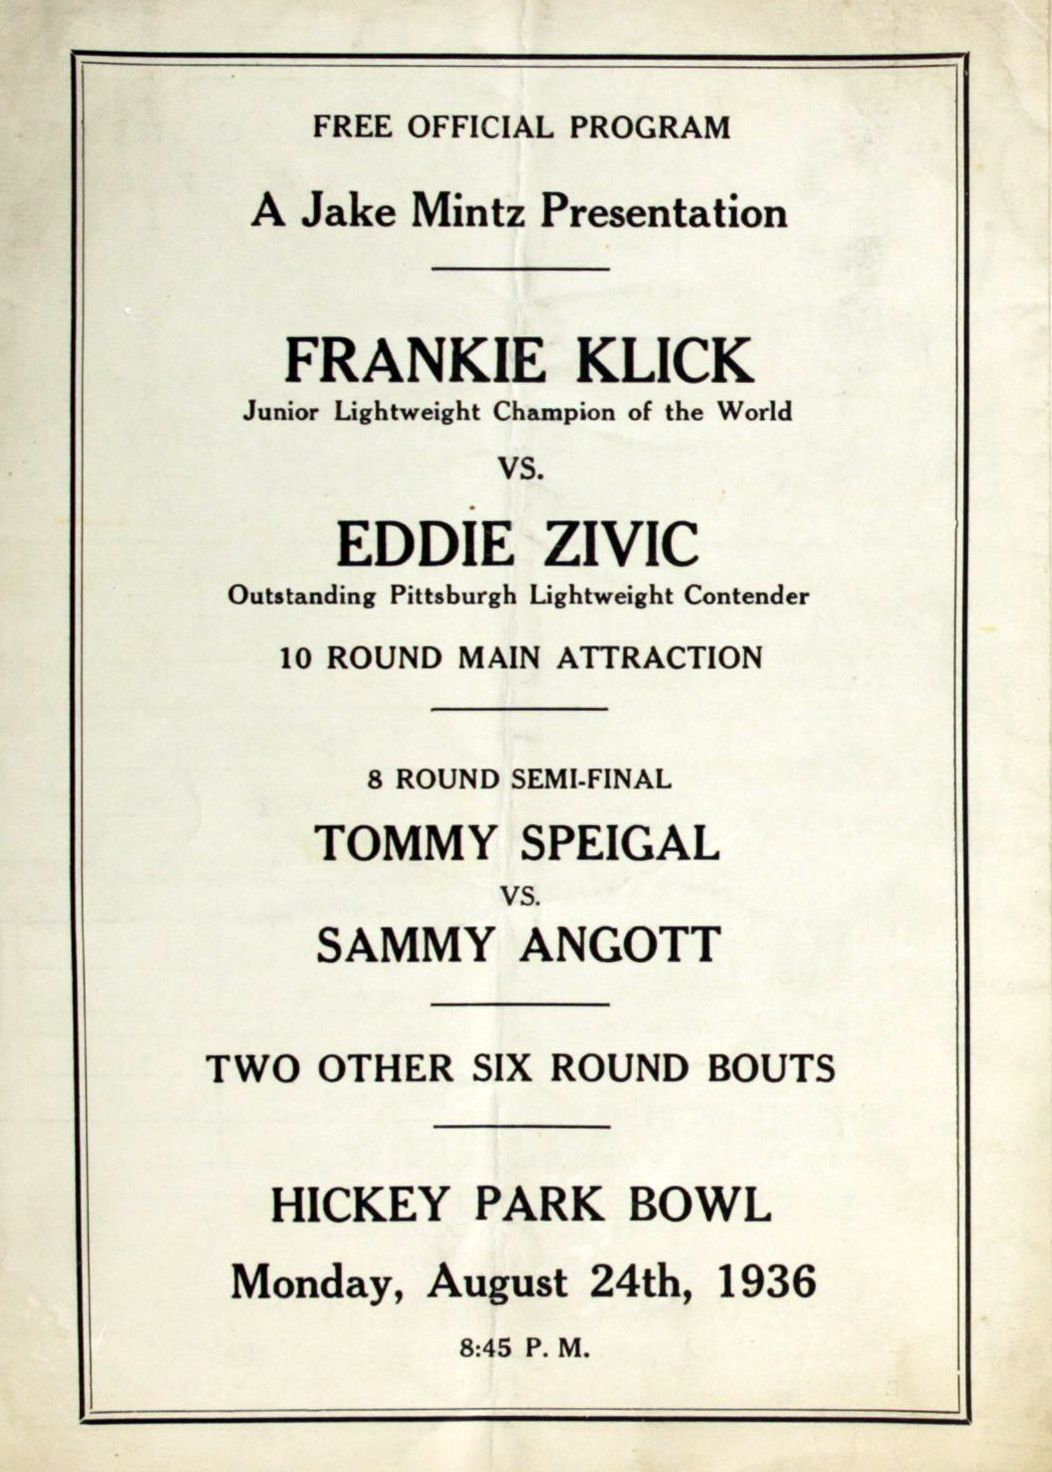 Fight Program 1936